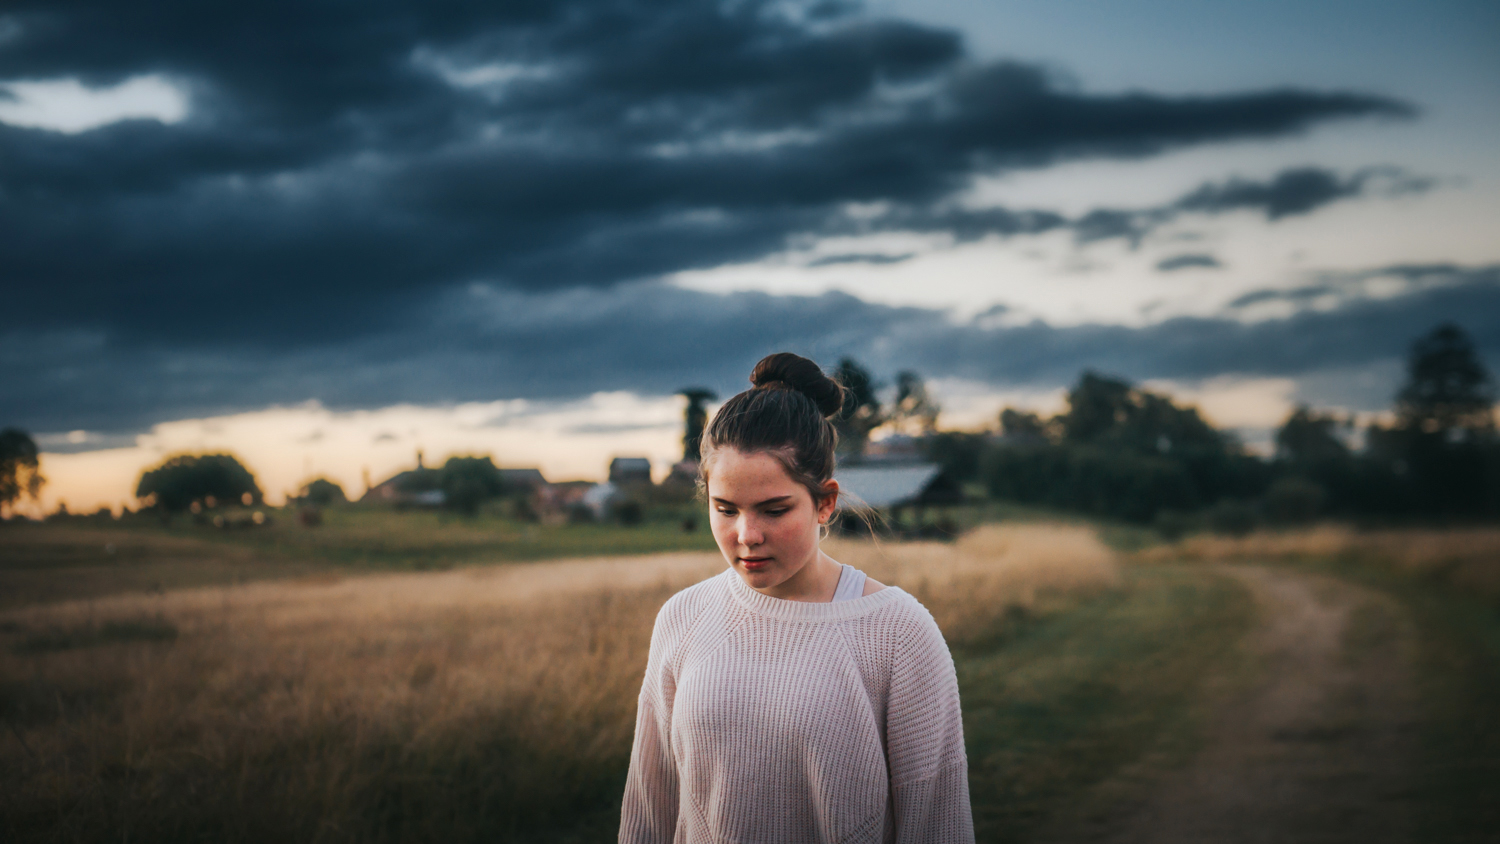 An emotive lifestyle portrait of a teenage girl walking through a field of grass at sunset in Rouse Hill, Sydney.